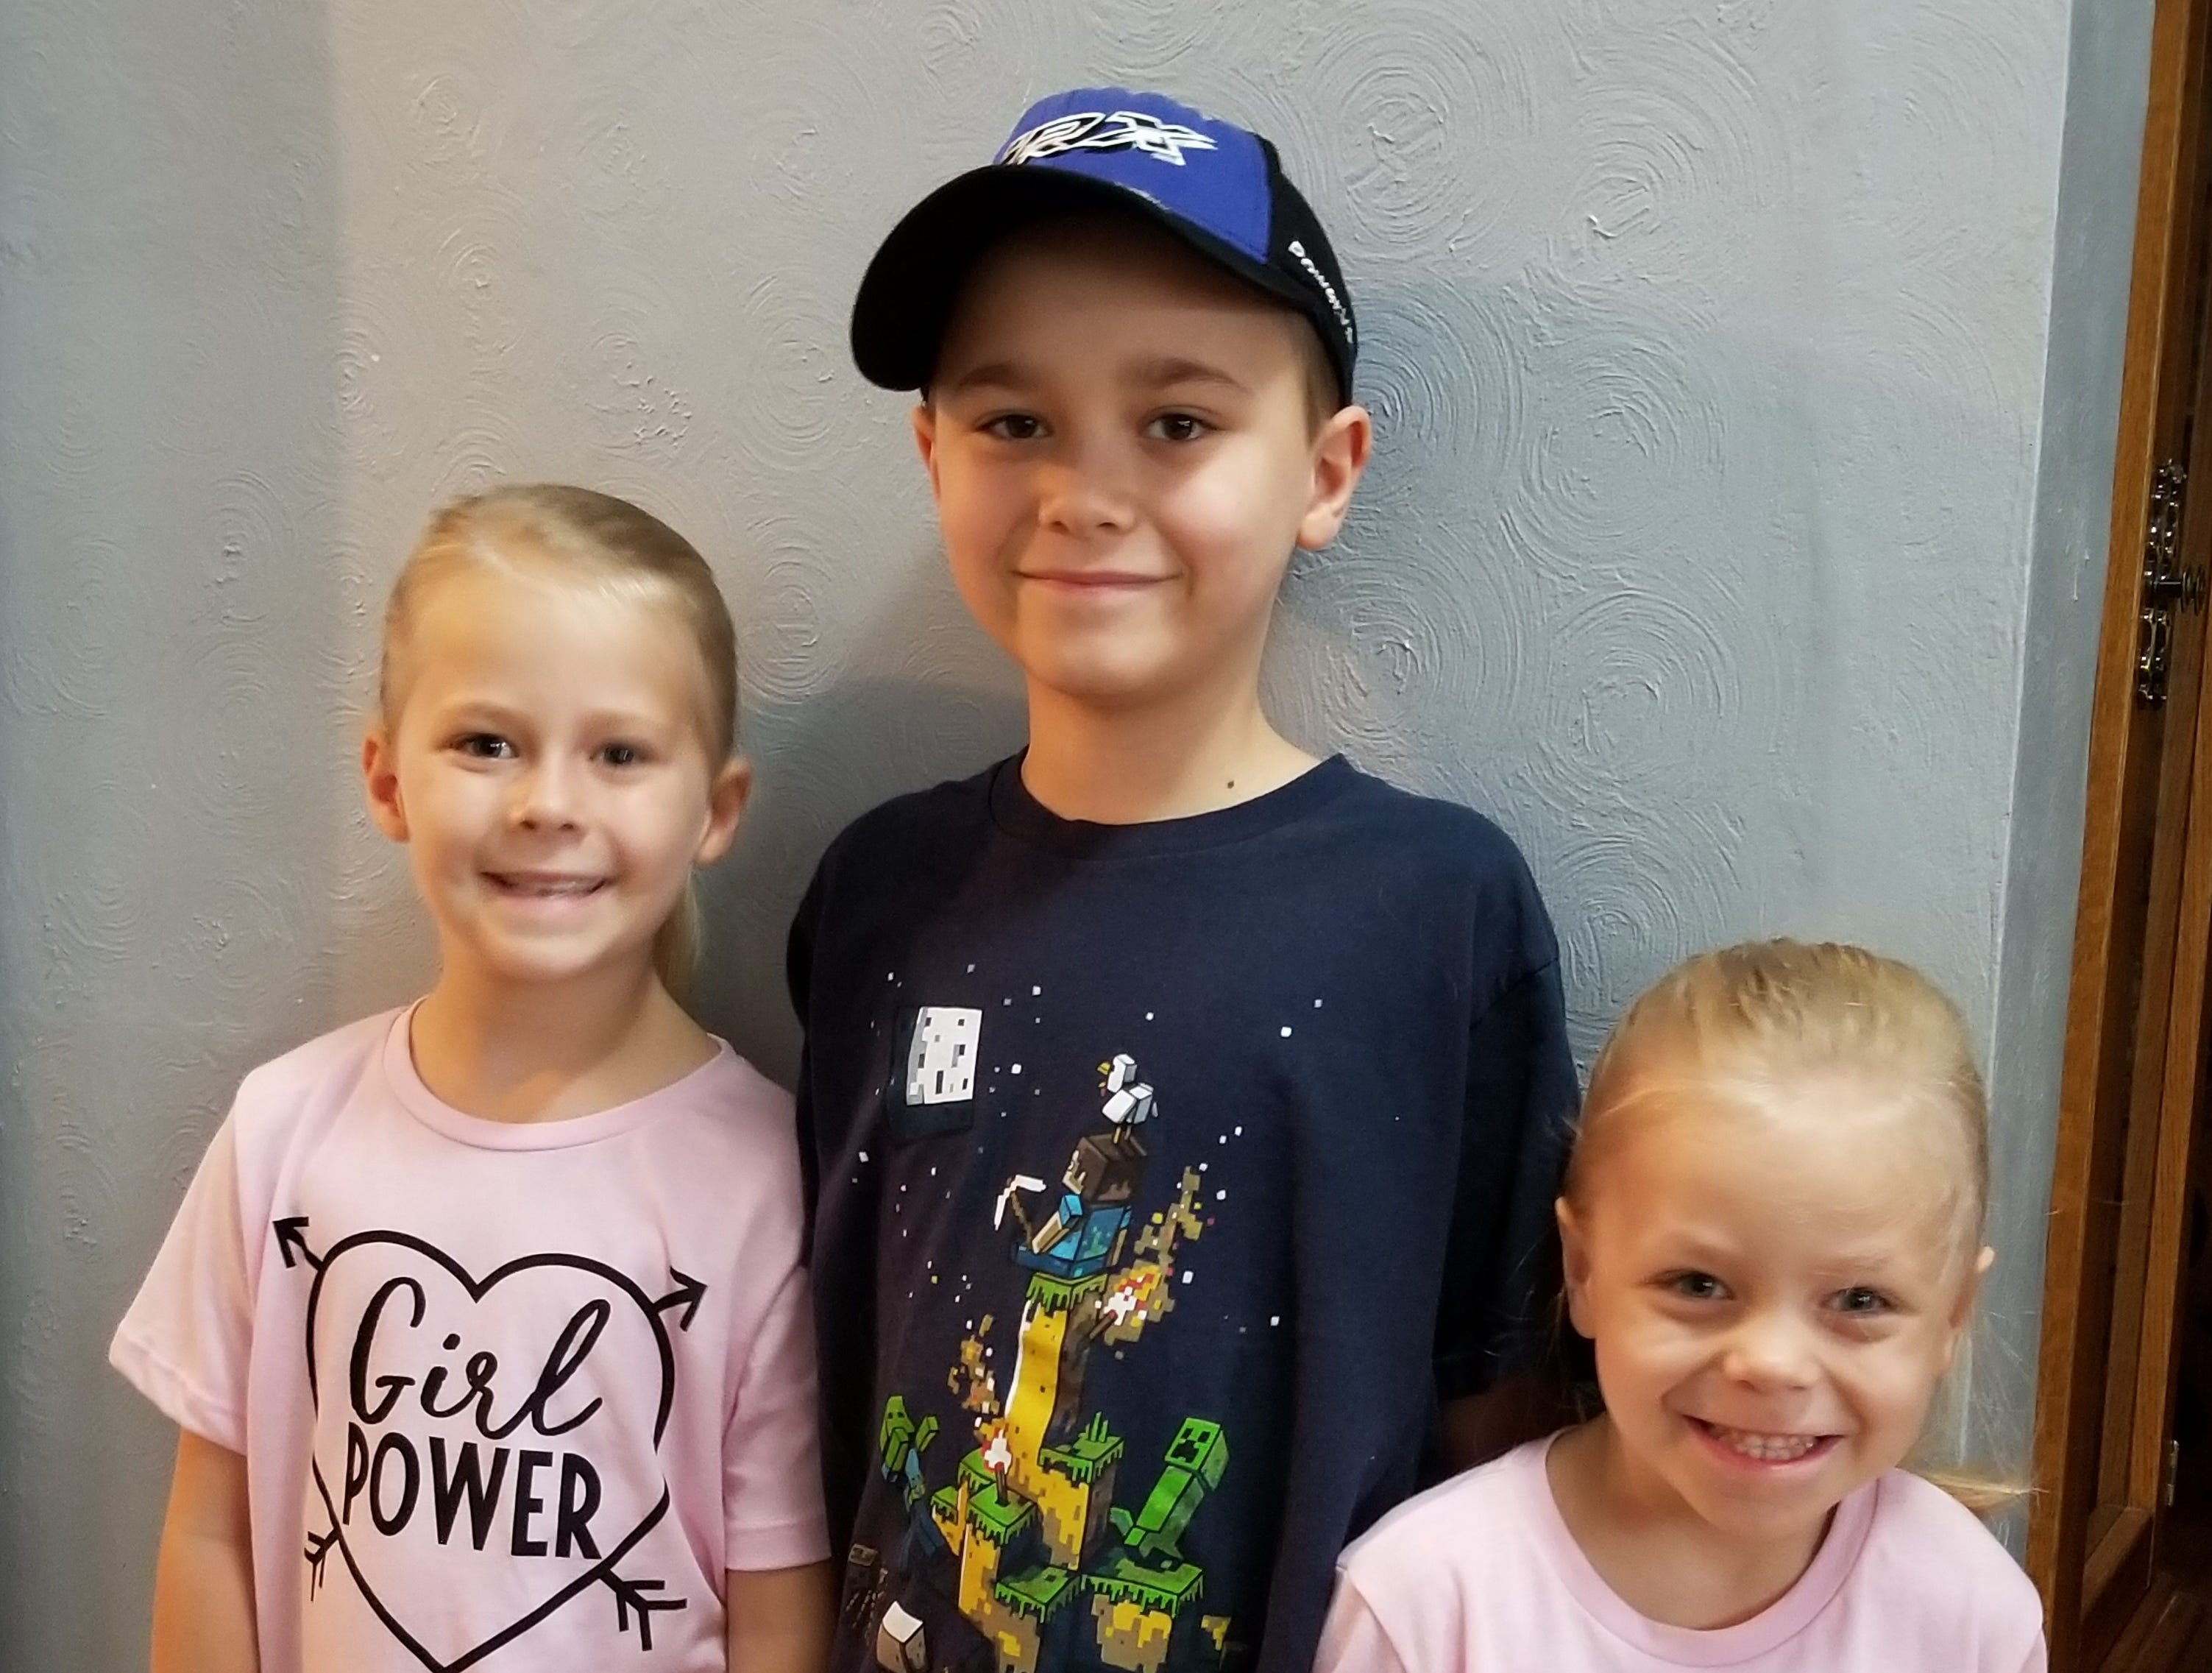 Savannah Schmelzer, Rowan Schmelzer and Amber Schmelzer on their first day of the new school year at Port Edwards Elementary School. Savannah is in second grade; Rowan is in third grade; and Amber is in 4K. Their parents are Jeff and Kris Schmelzer of Port Edwards.